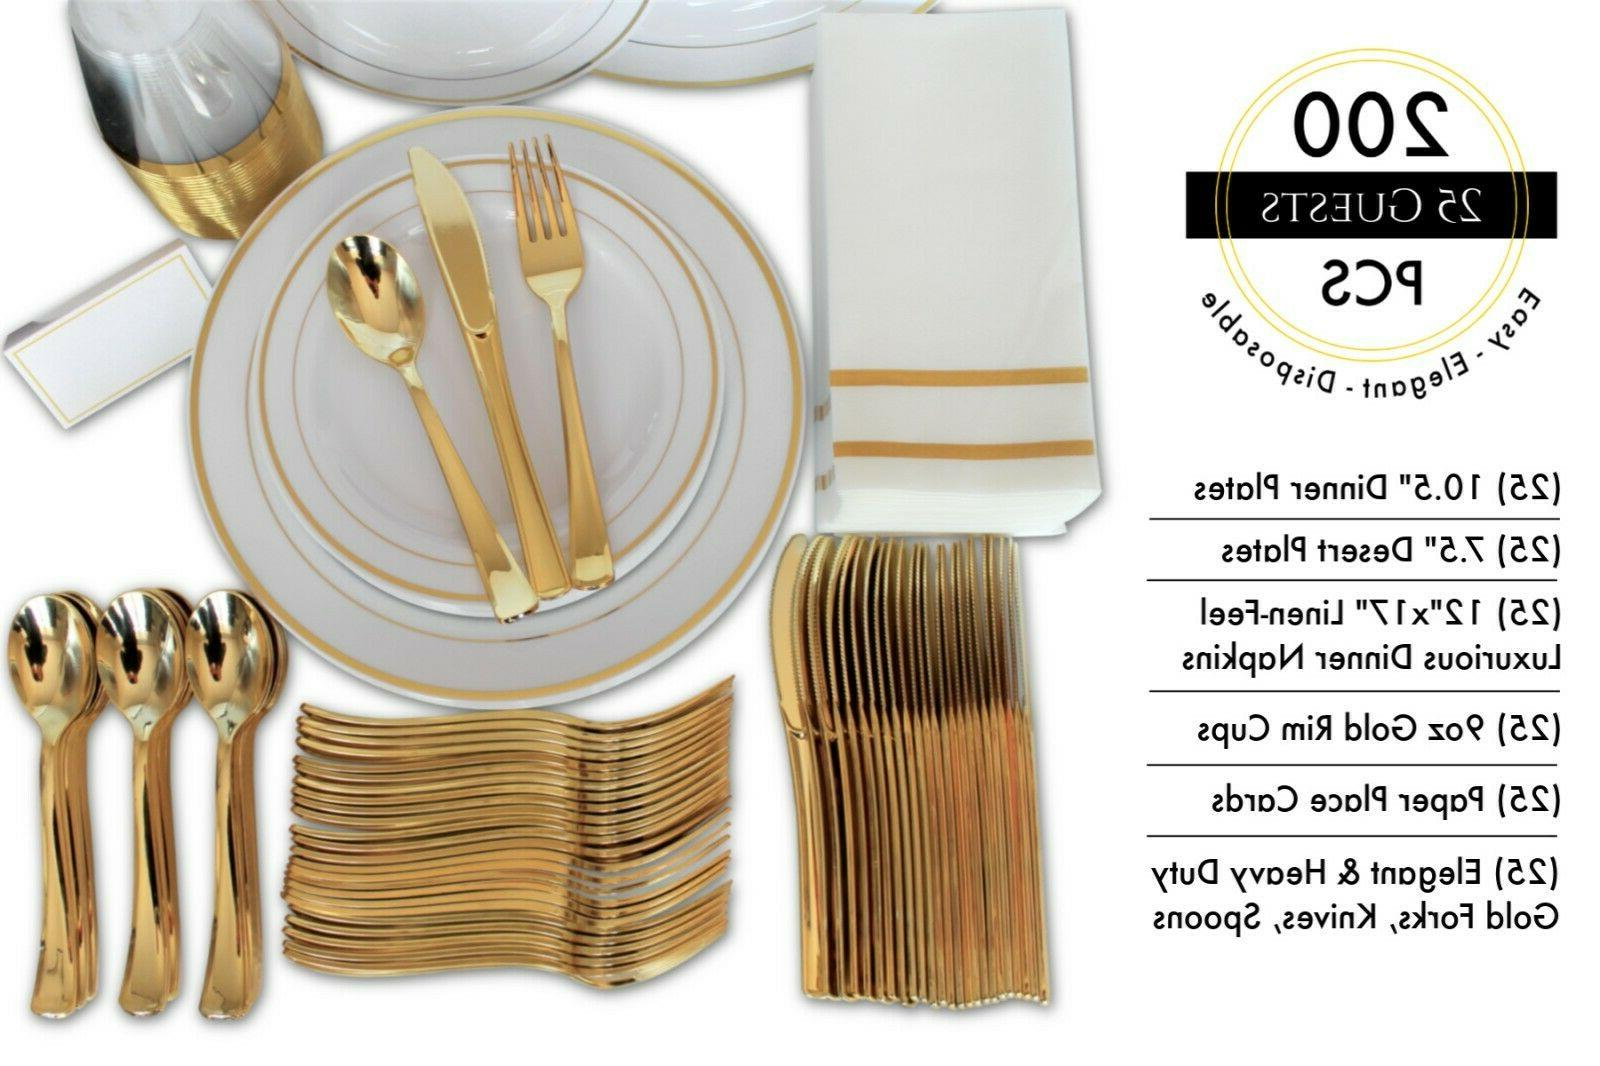 200 Piece Disposable Set & Plates for Party Guests